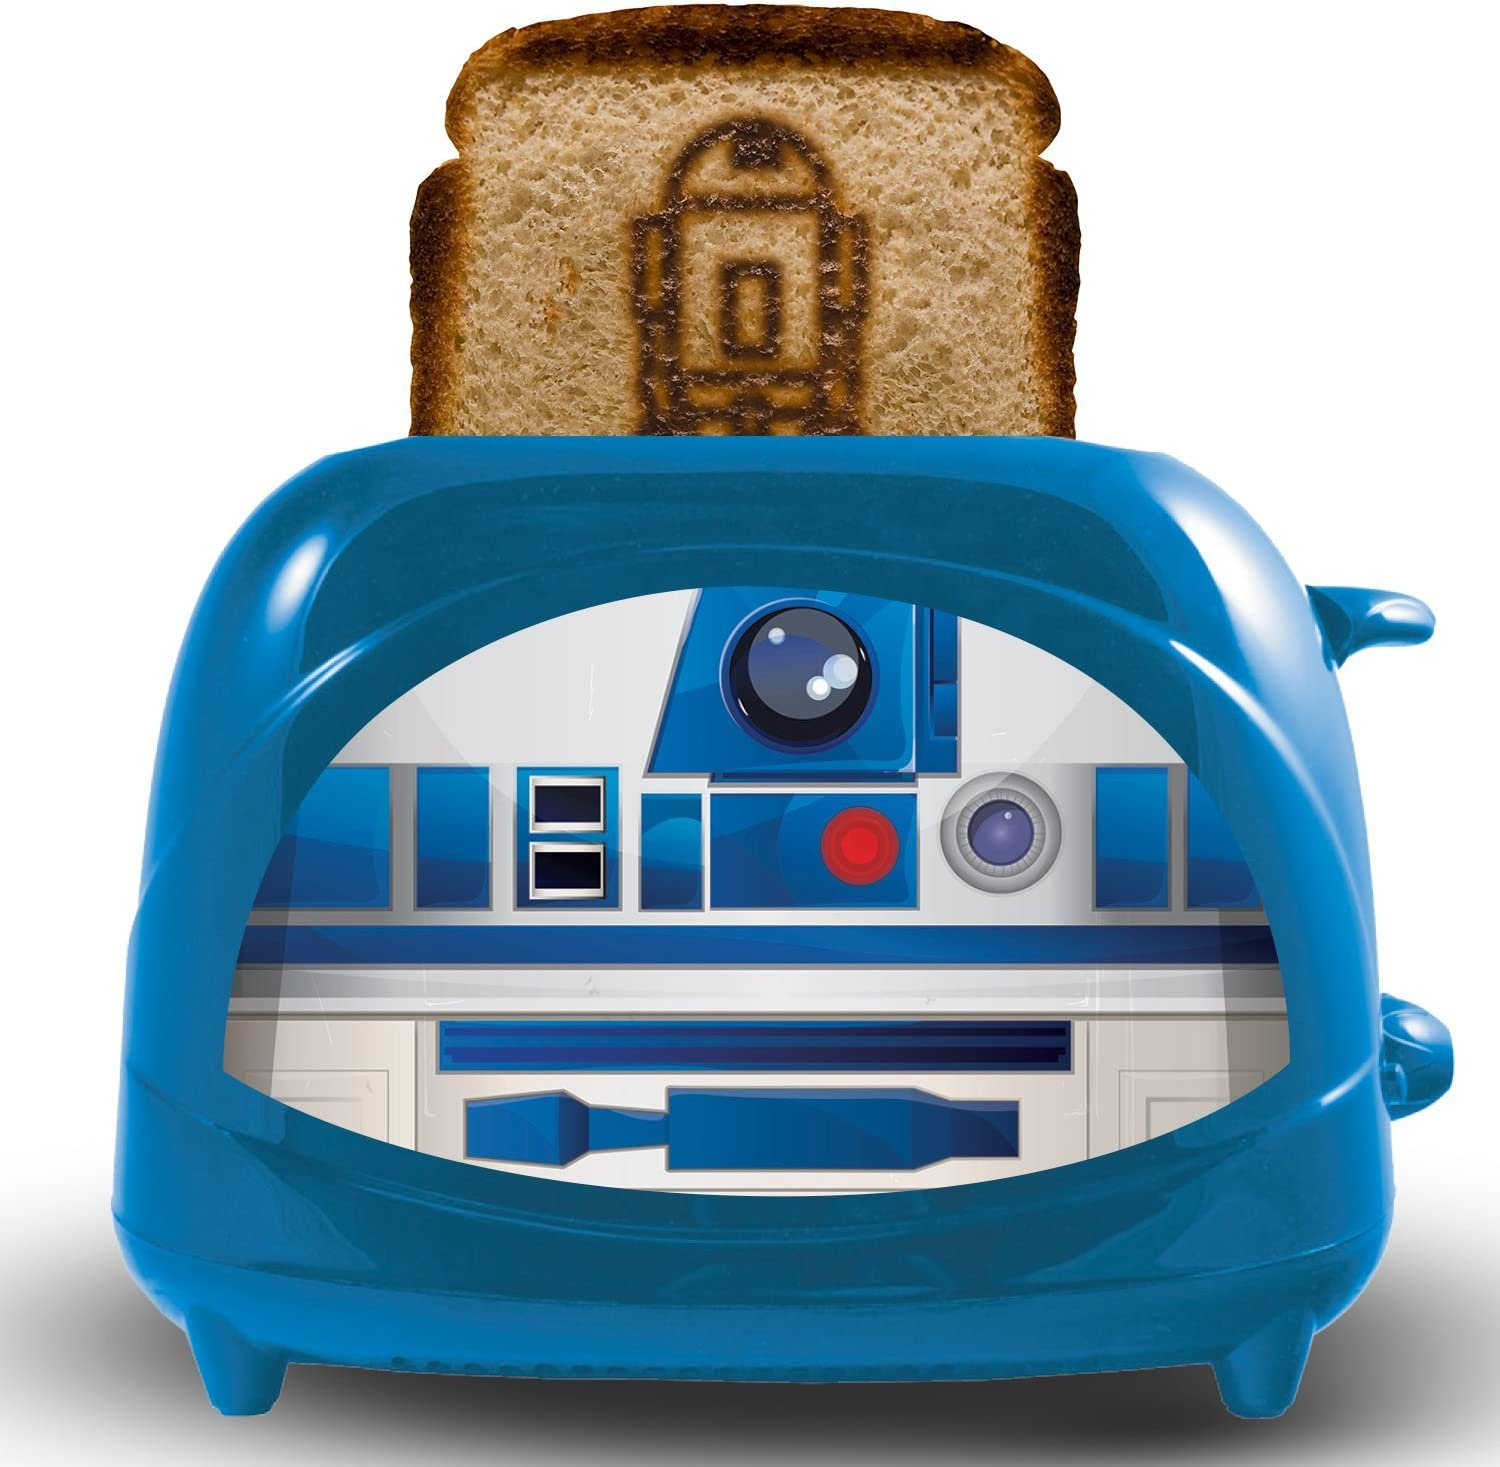 Uncanny Brands Star Wars R2-D2 Empire 2-Slice Toaster- Toasts Iconic Droid onto Your Toast